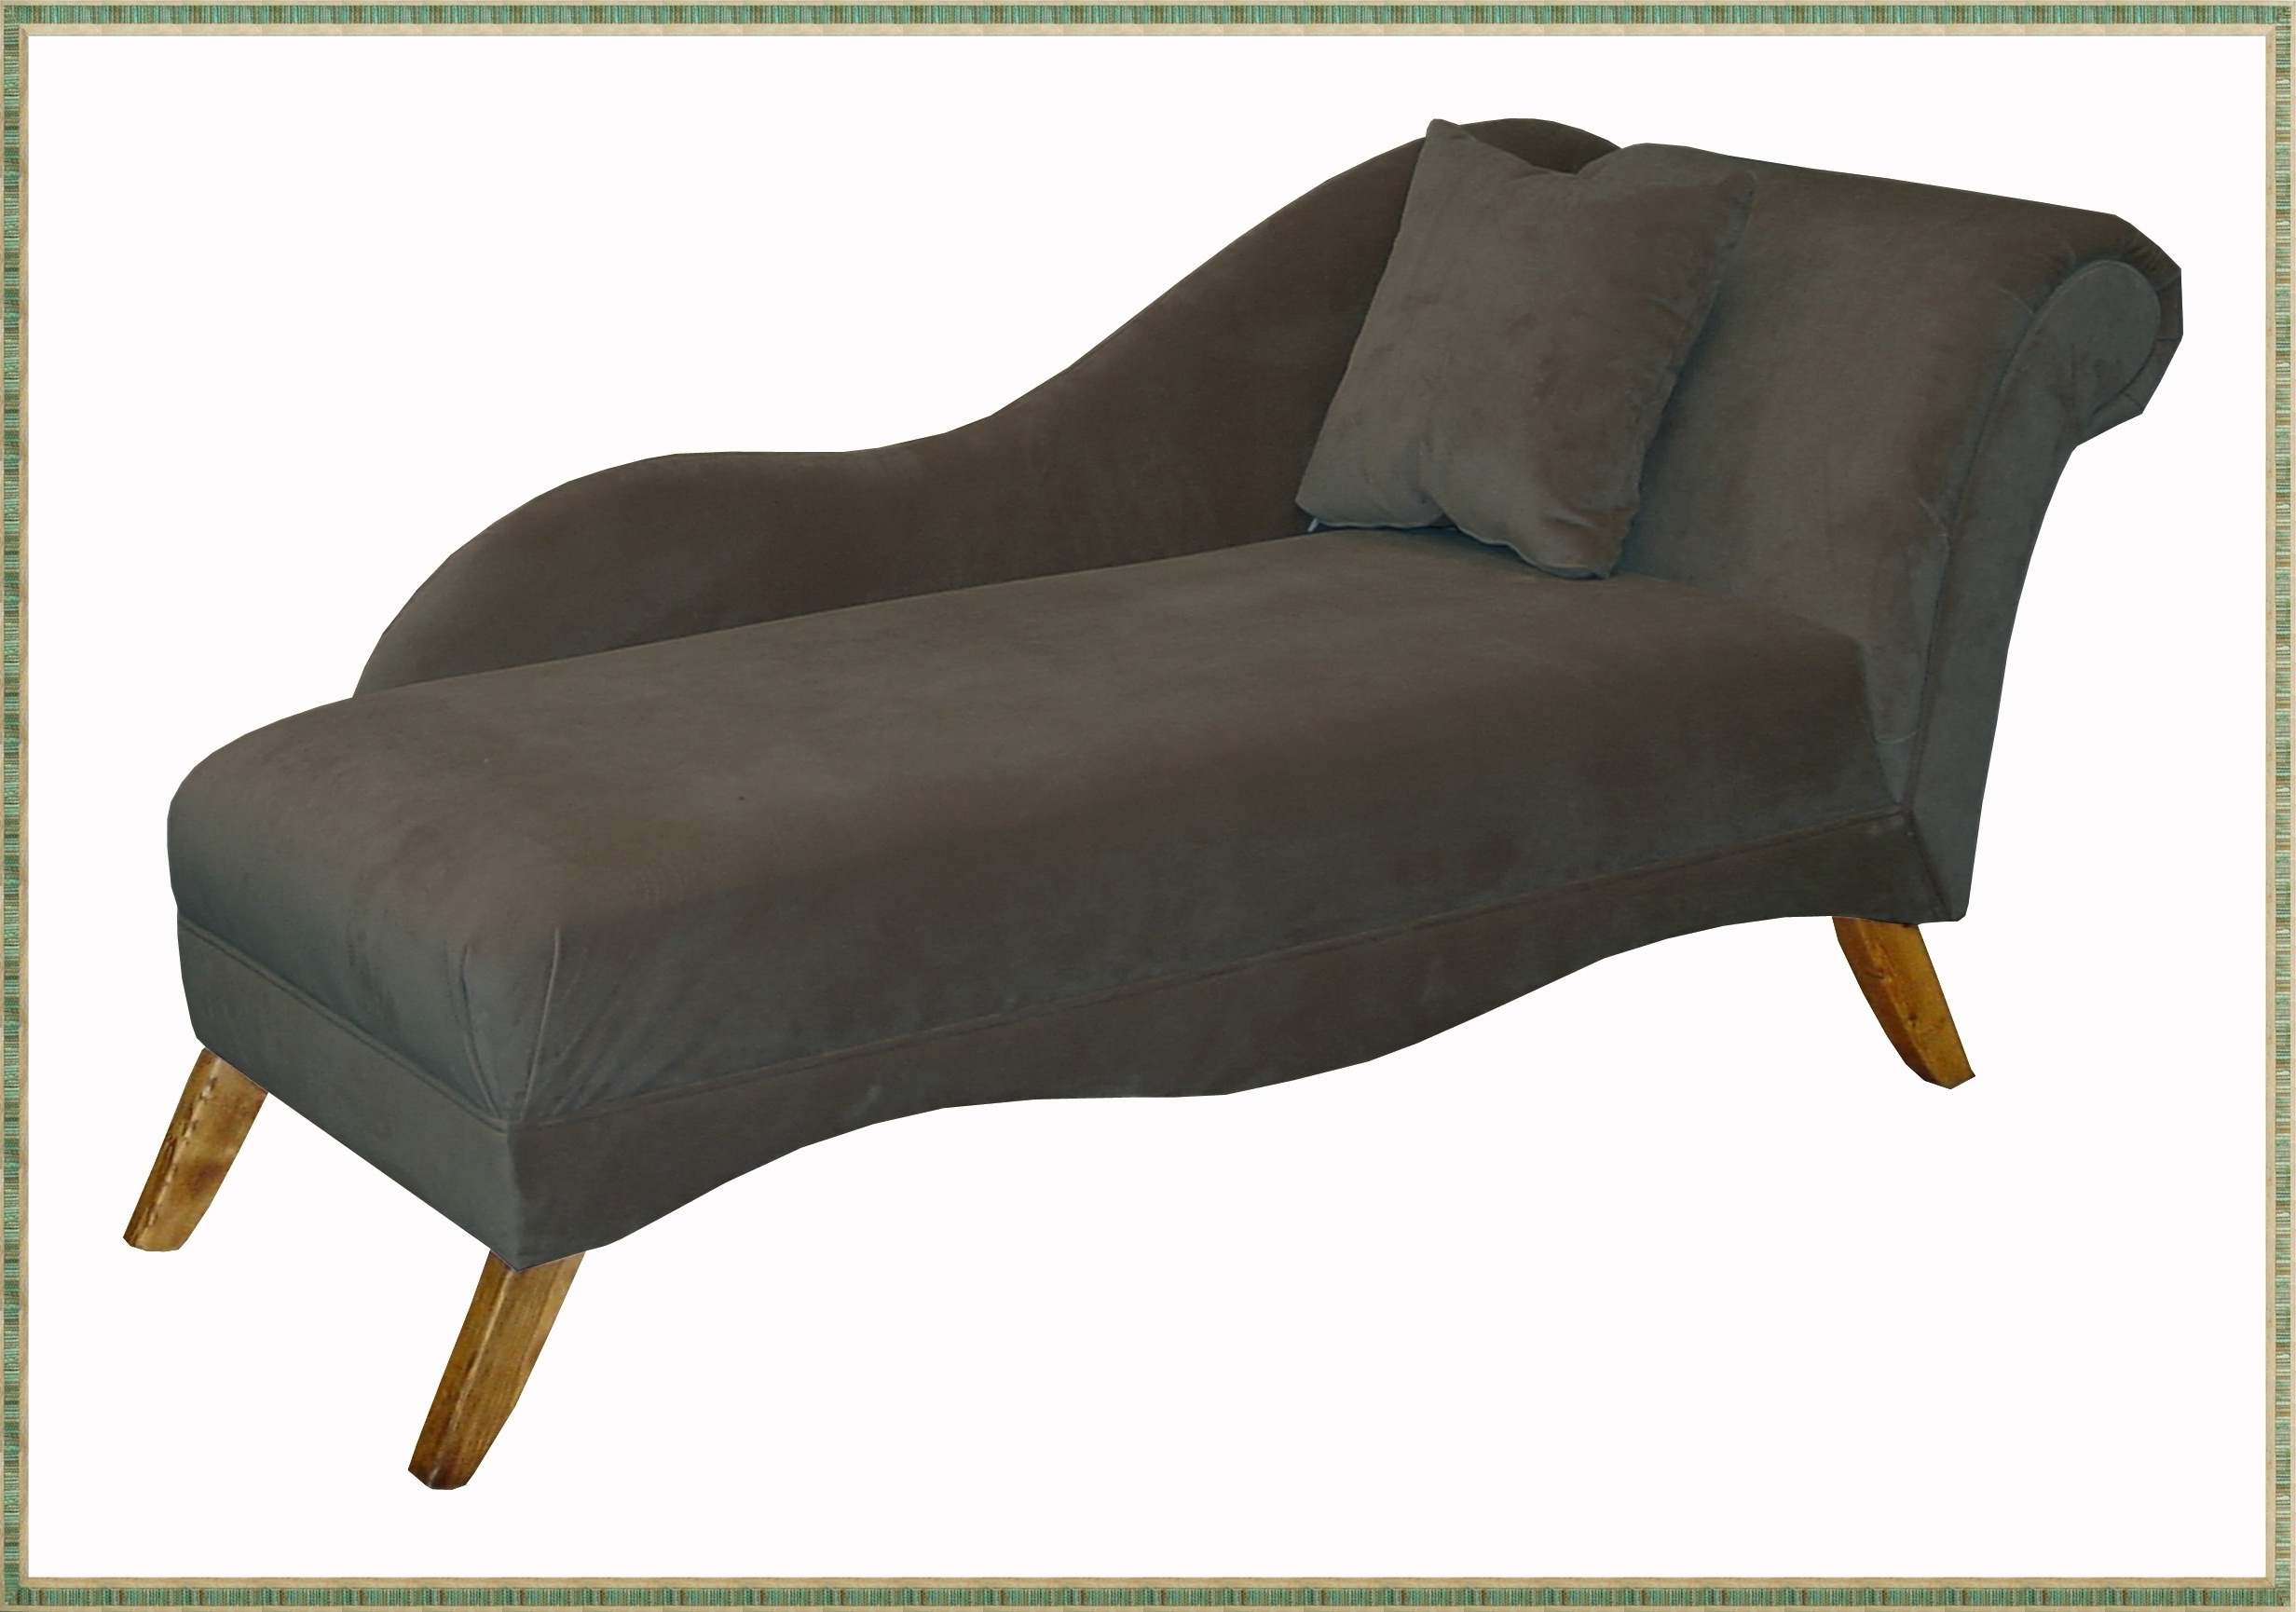 Chaise Lounge Slipcovers Throughout Most Current Lounge Chair : Bedroom Lounge Chairs Bedroom Chase Furniture Cheap (View 4 of 15)